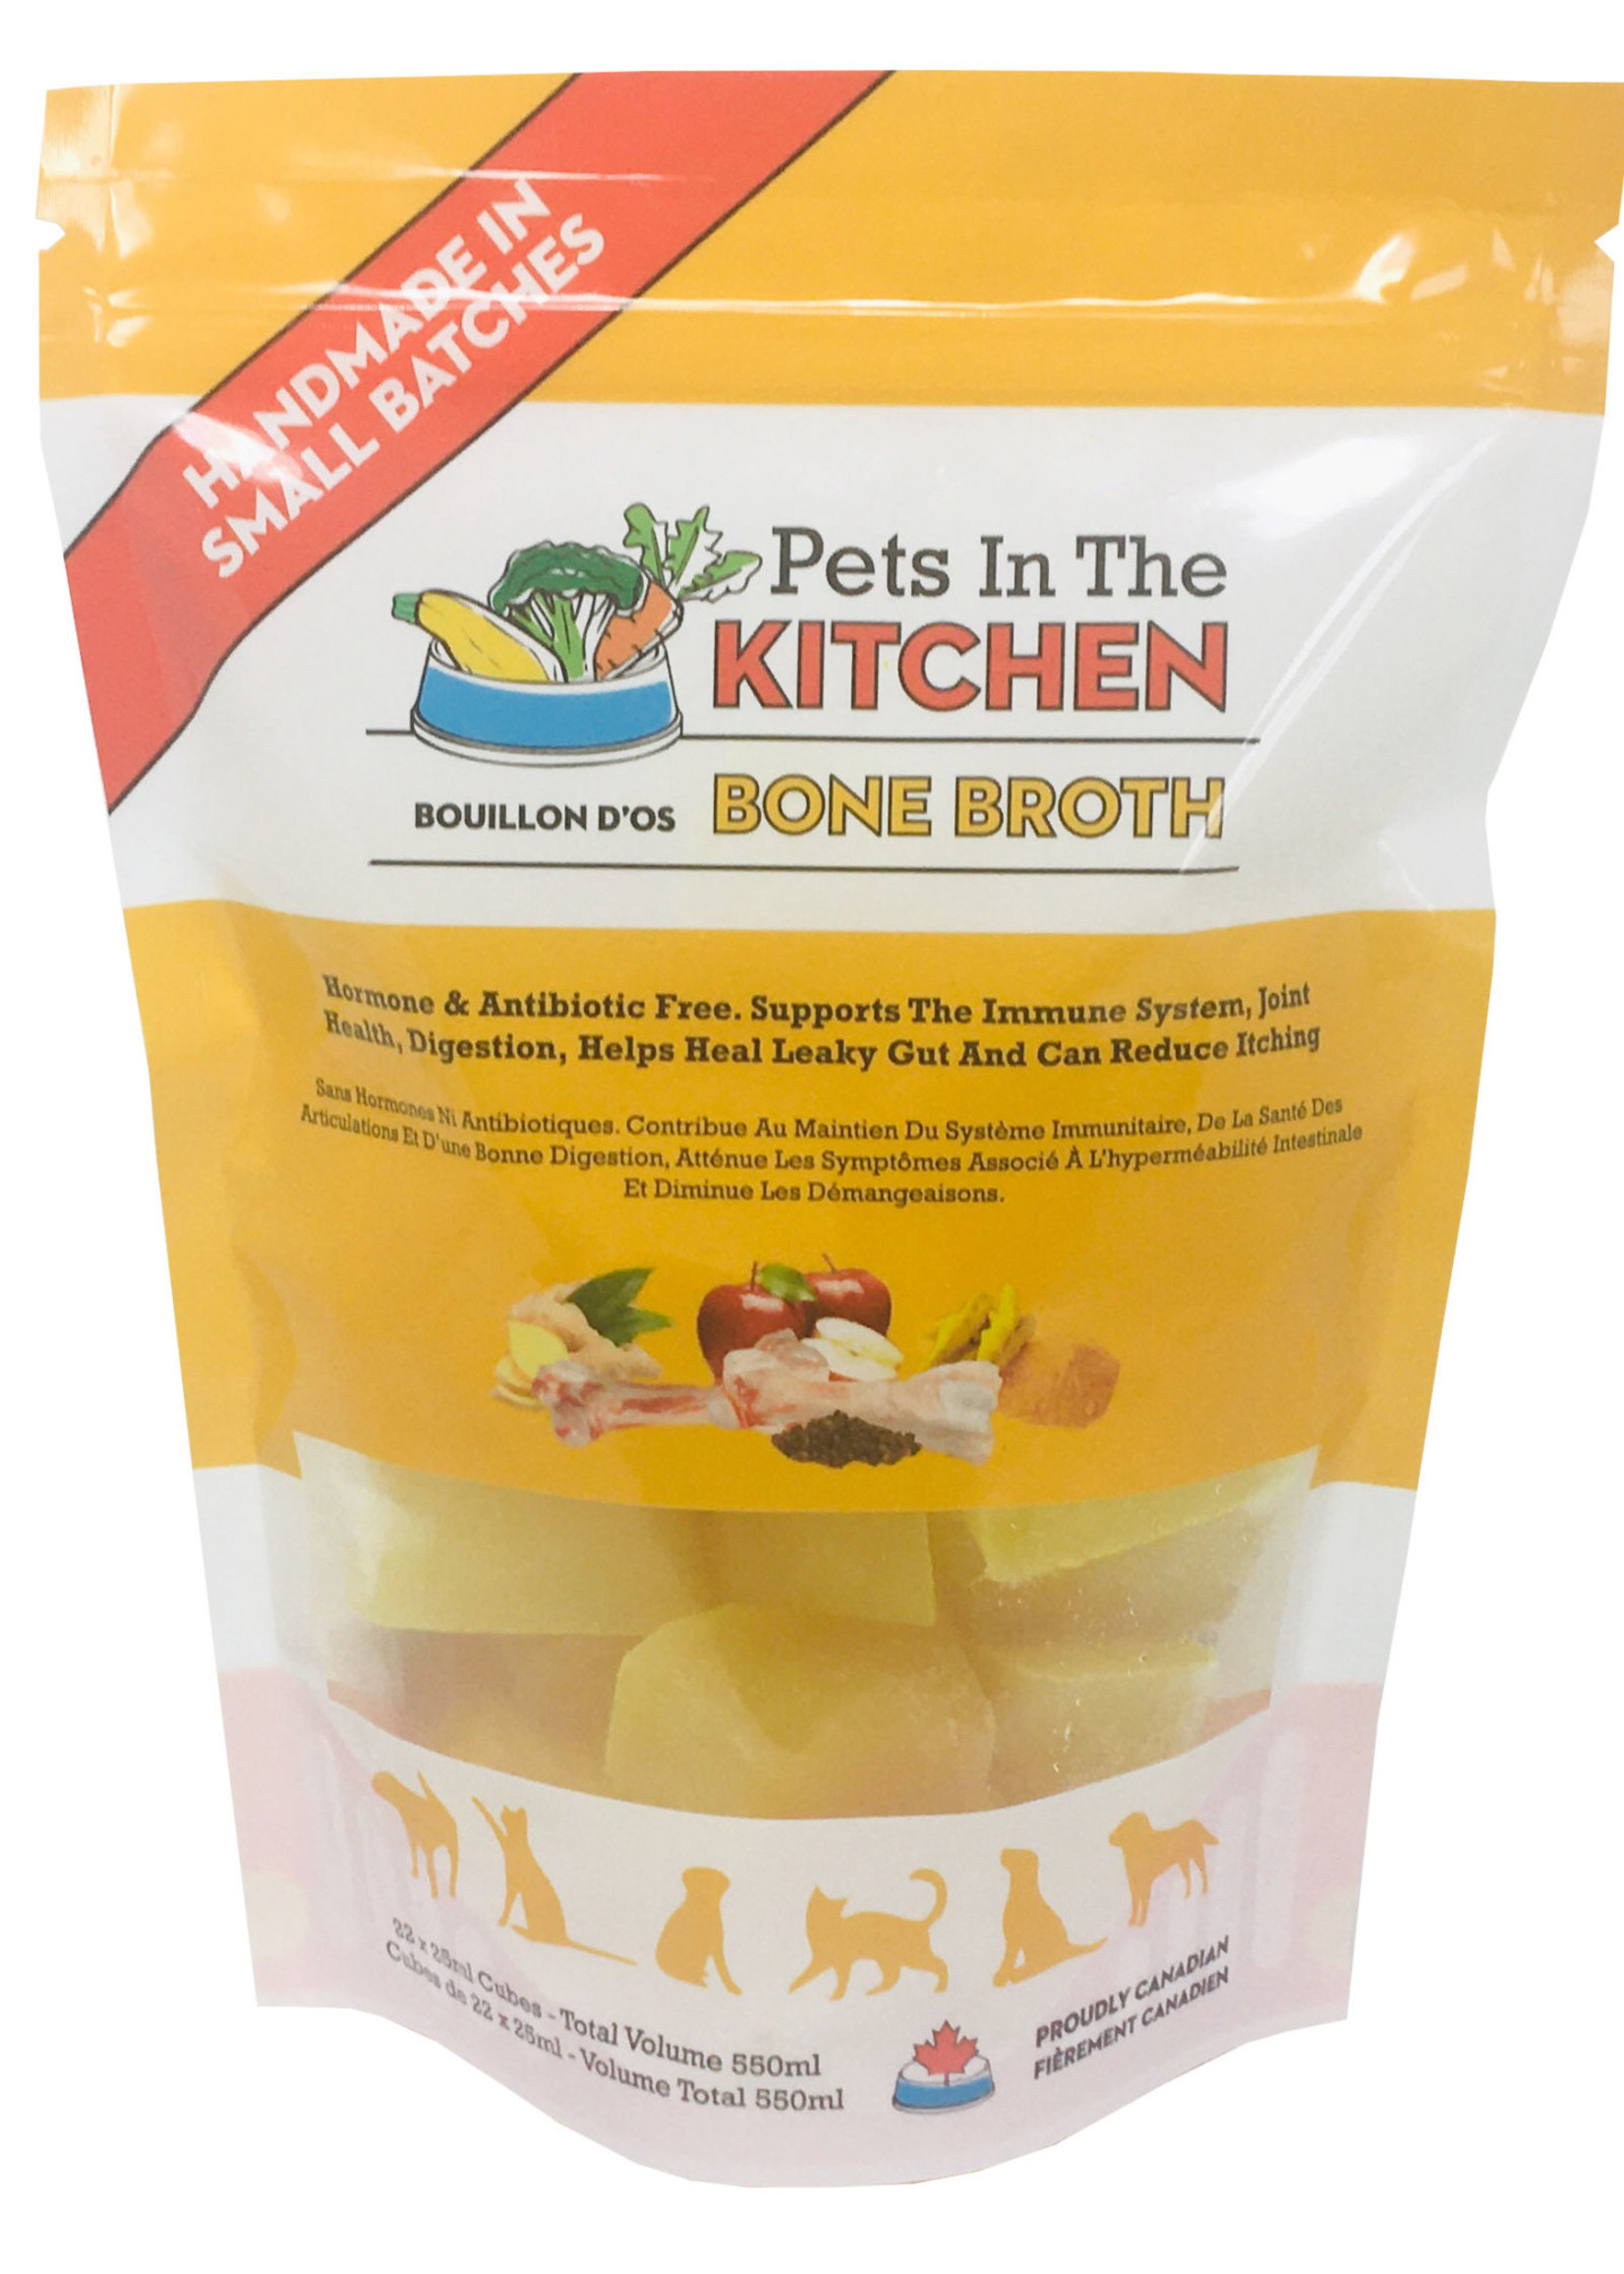 Pets in the KITCHEN Pets in the Kitchen Frozen Bone Broth Cubes 550mL